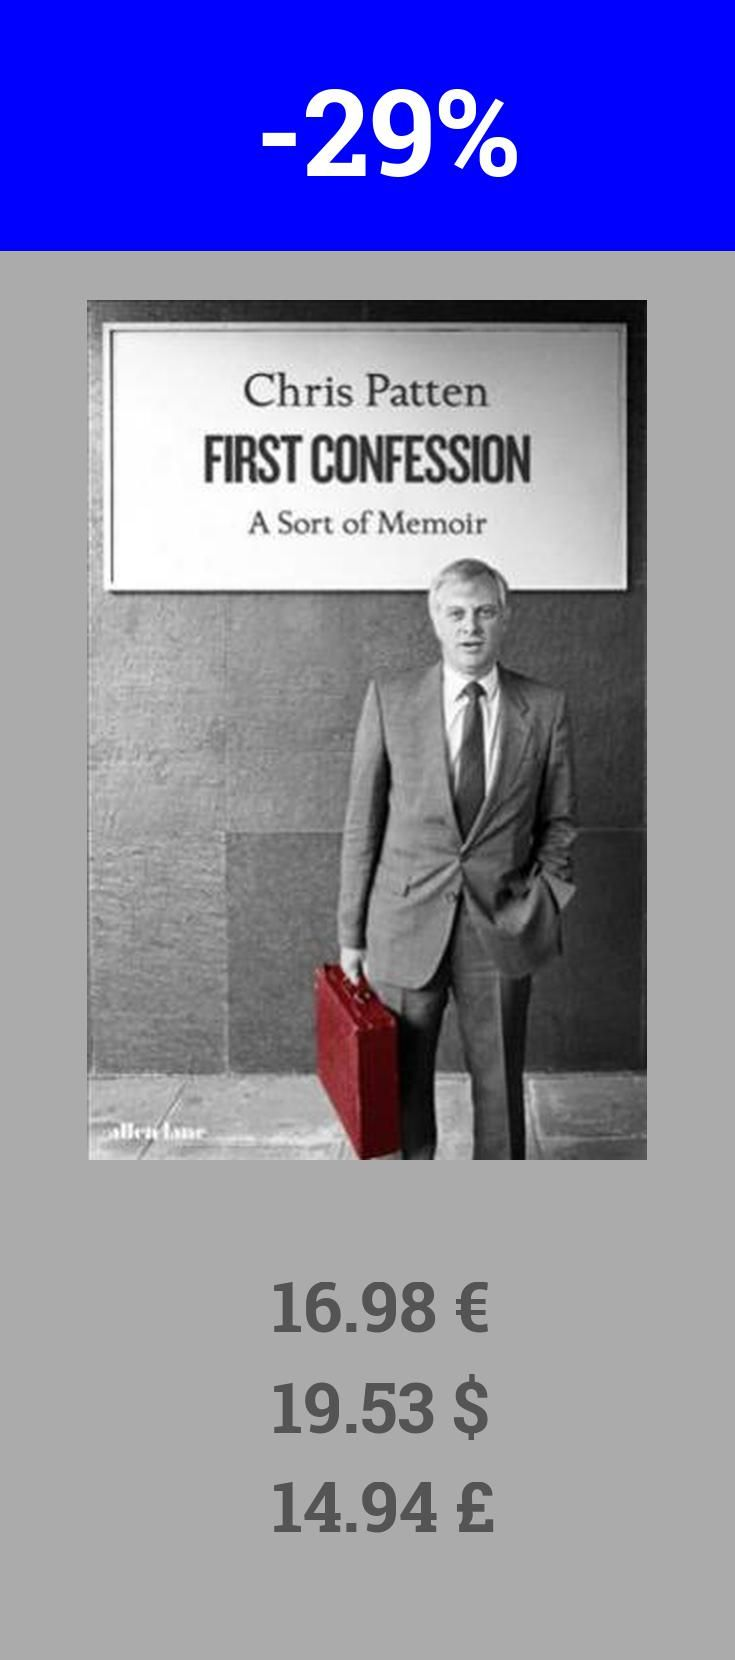 Have you read First Confession already? If not definitely check it out. Right now it is 29% off bookdepository. Chris Patten is currently Chancellor of Oxford University. As a British MP (1979-92) he served as Minister for Overseas Development, Secretary of State for the Environment and Chairman of the Conservative Party, being described afterwards as the best Tory Prime Minister we never had (Observer). He is well known for being the last Governor of Hong Kong (1992-7), about which he wrote…